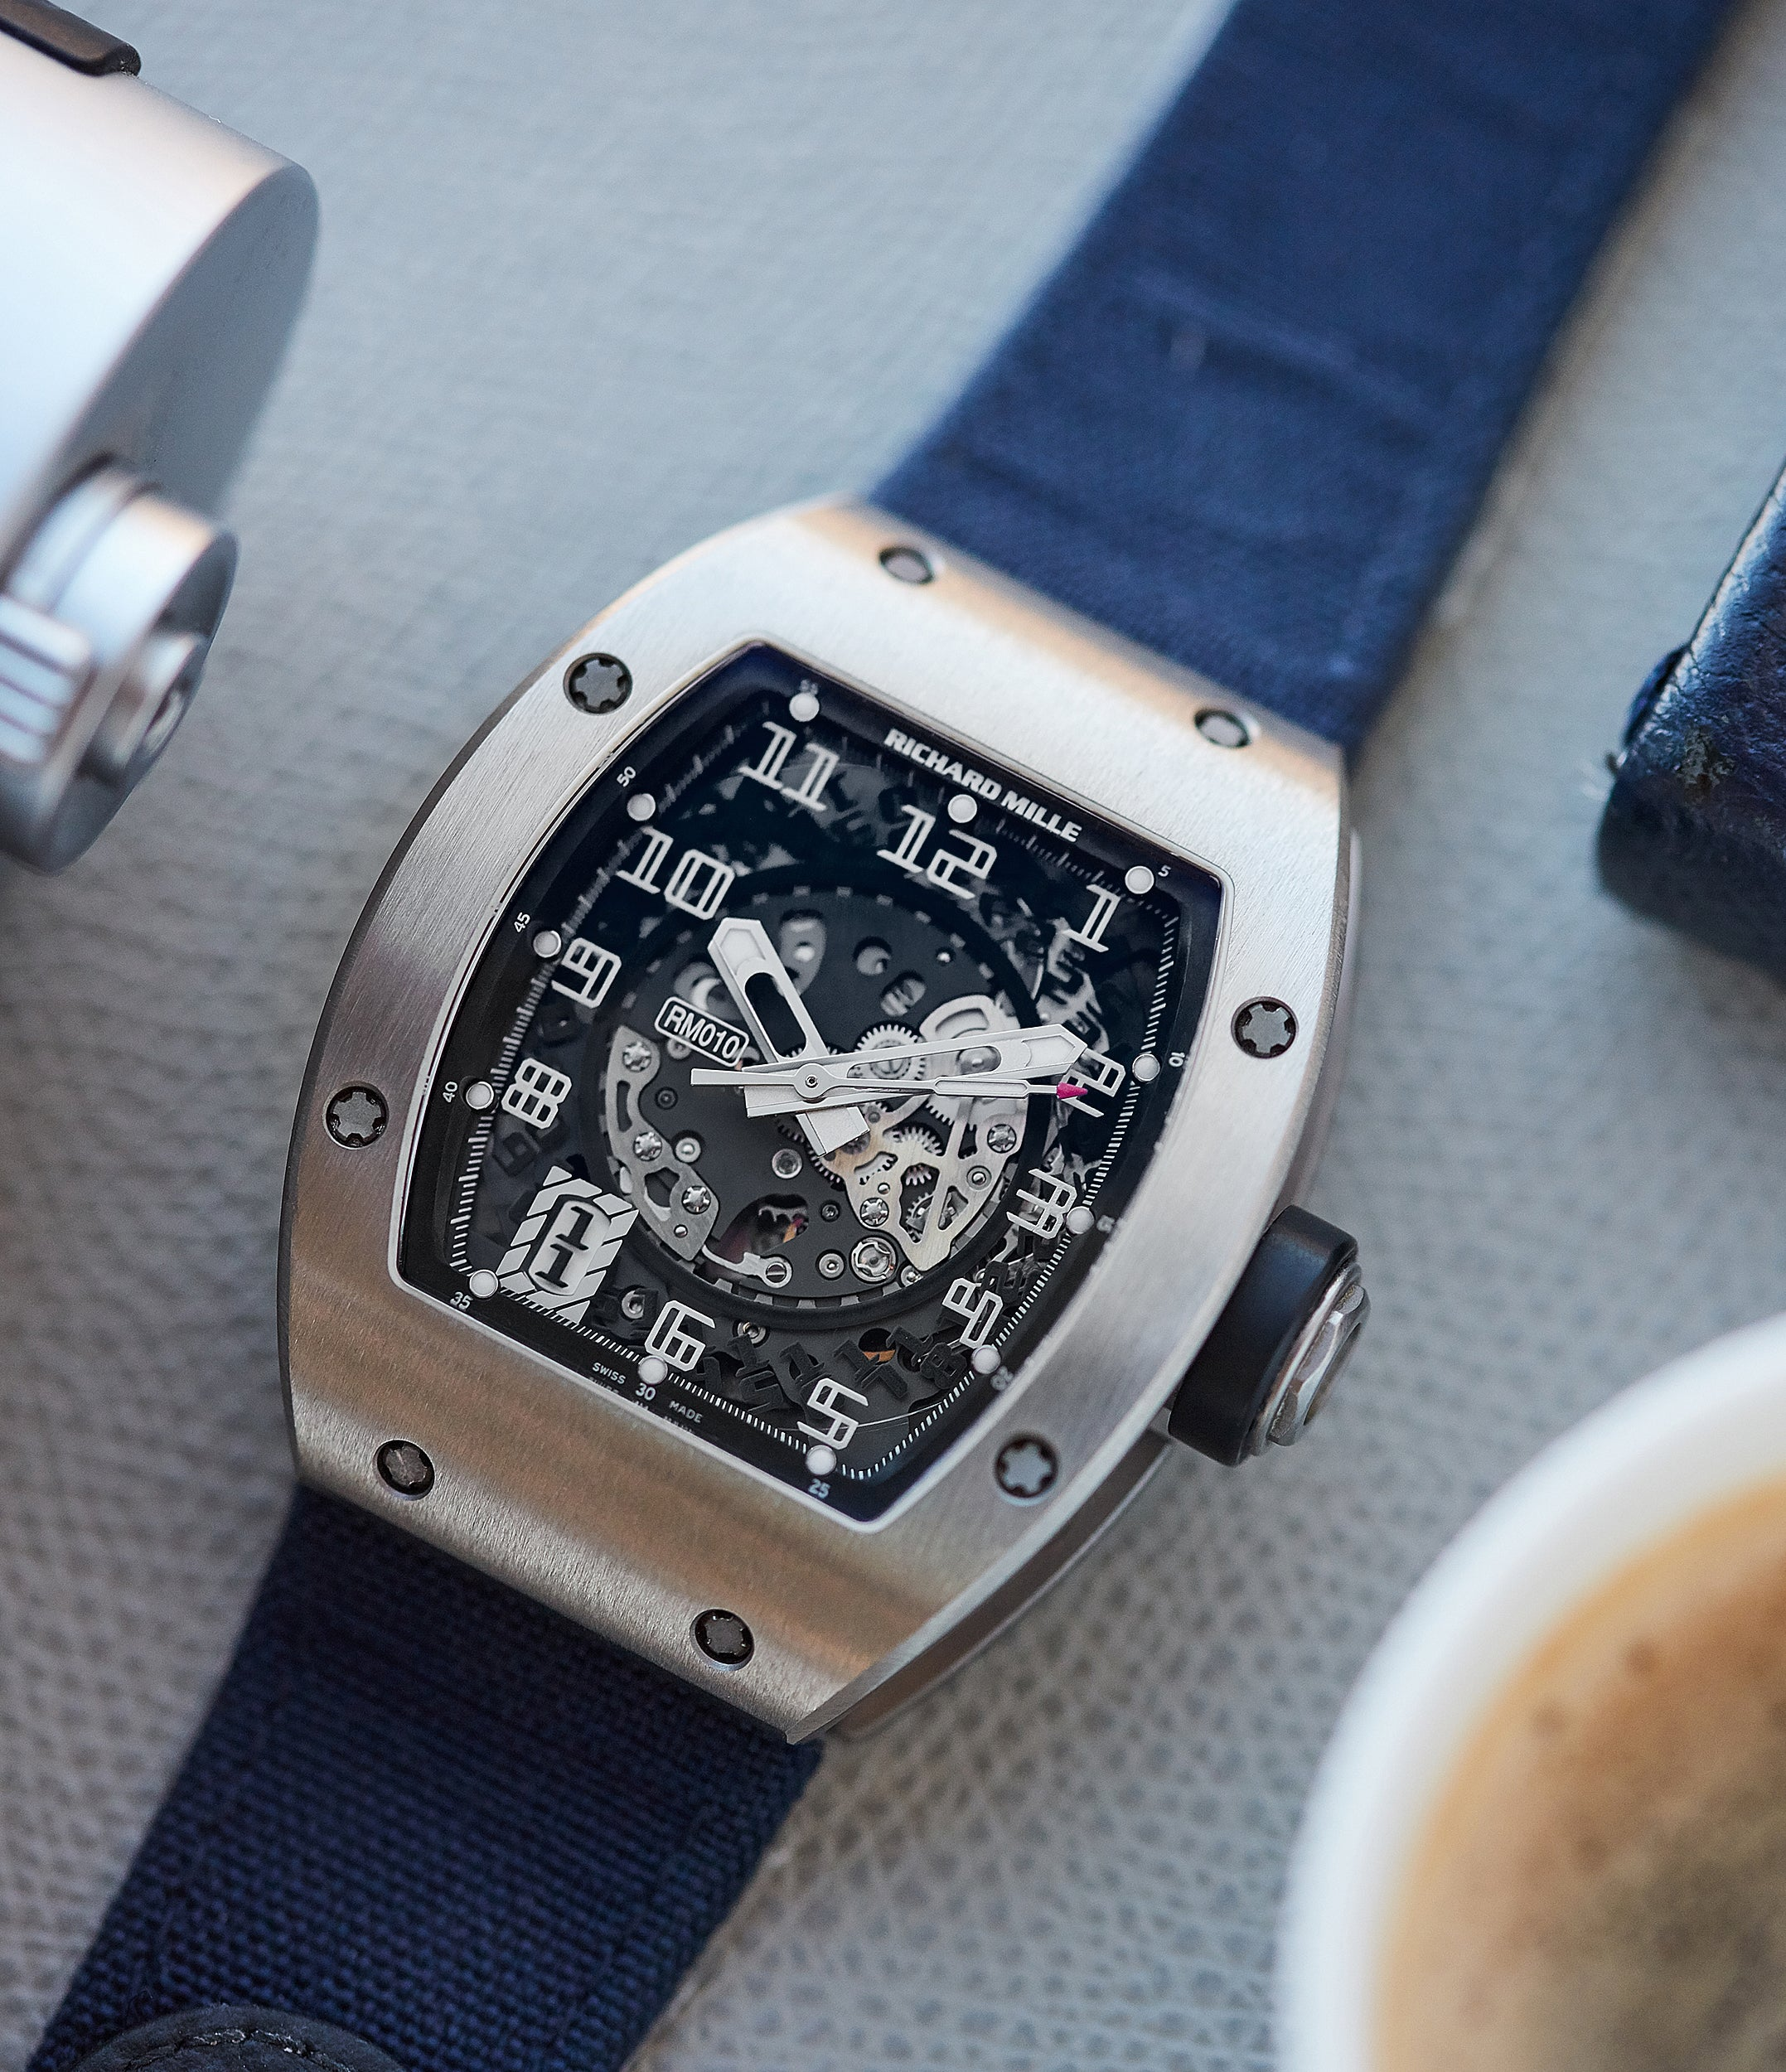 independent watchmaker Richard Mille RM010 titanium rare luxury sport watch for sale online at A Collected Man London UK specialist of rare watches